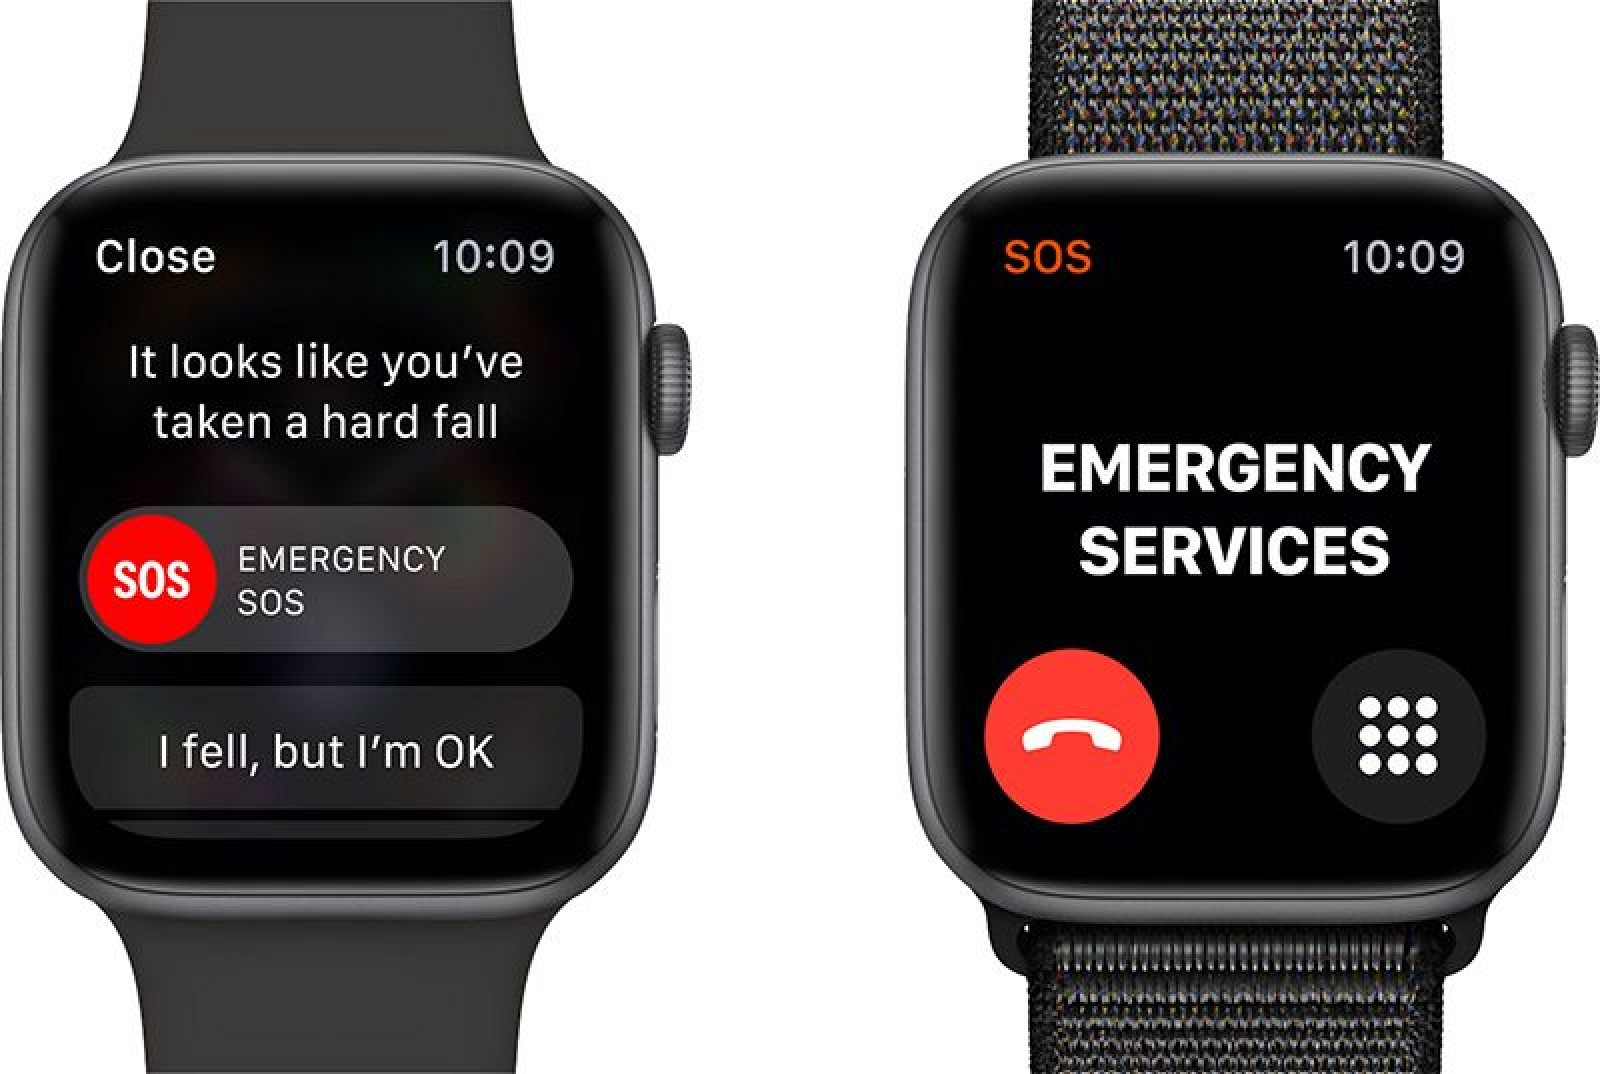 New Apple Watch will not identify drop by default, if the user is under 65 years